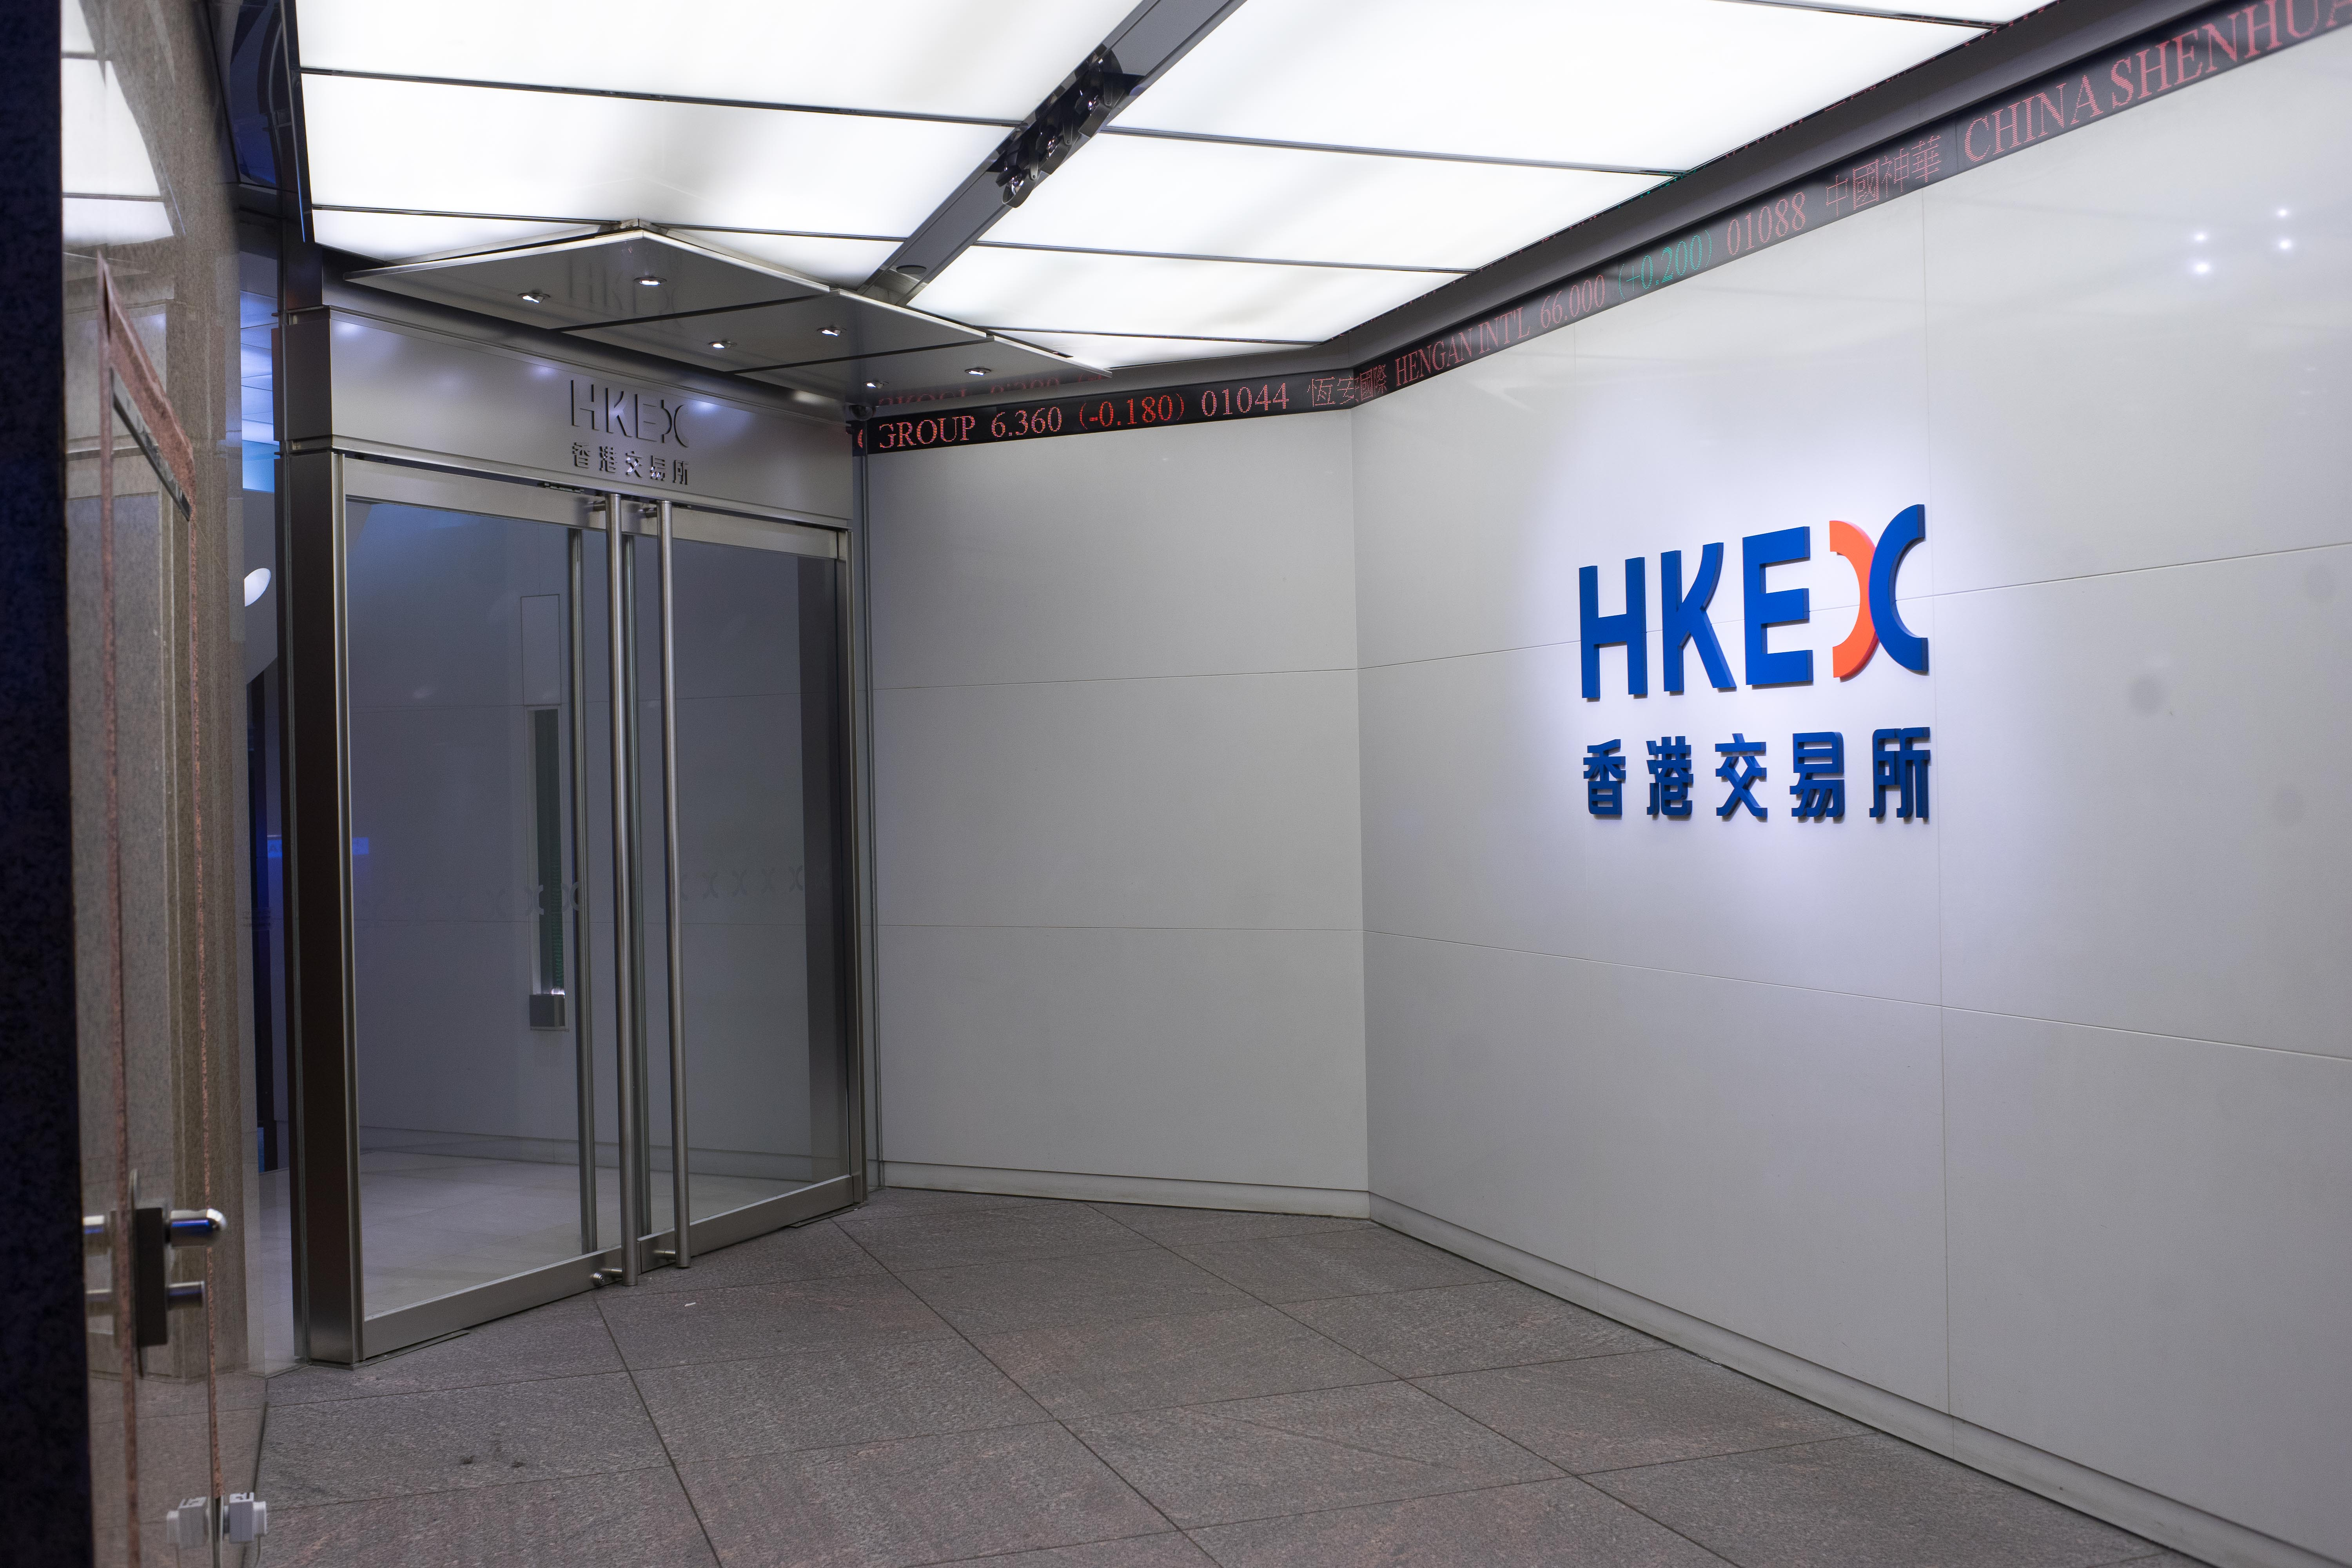 The entrance of HKEX outside of Exchange Square in Hong Kong.